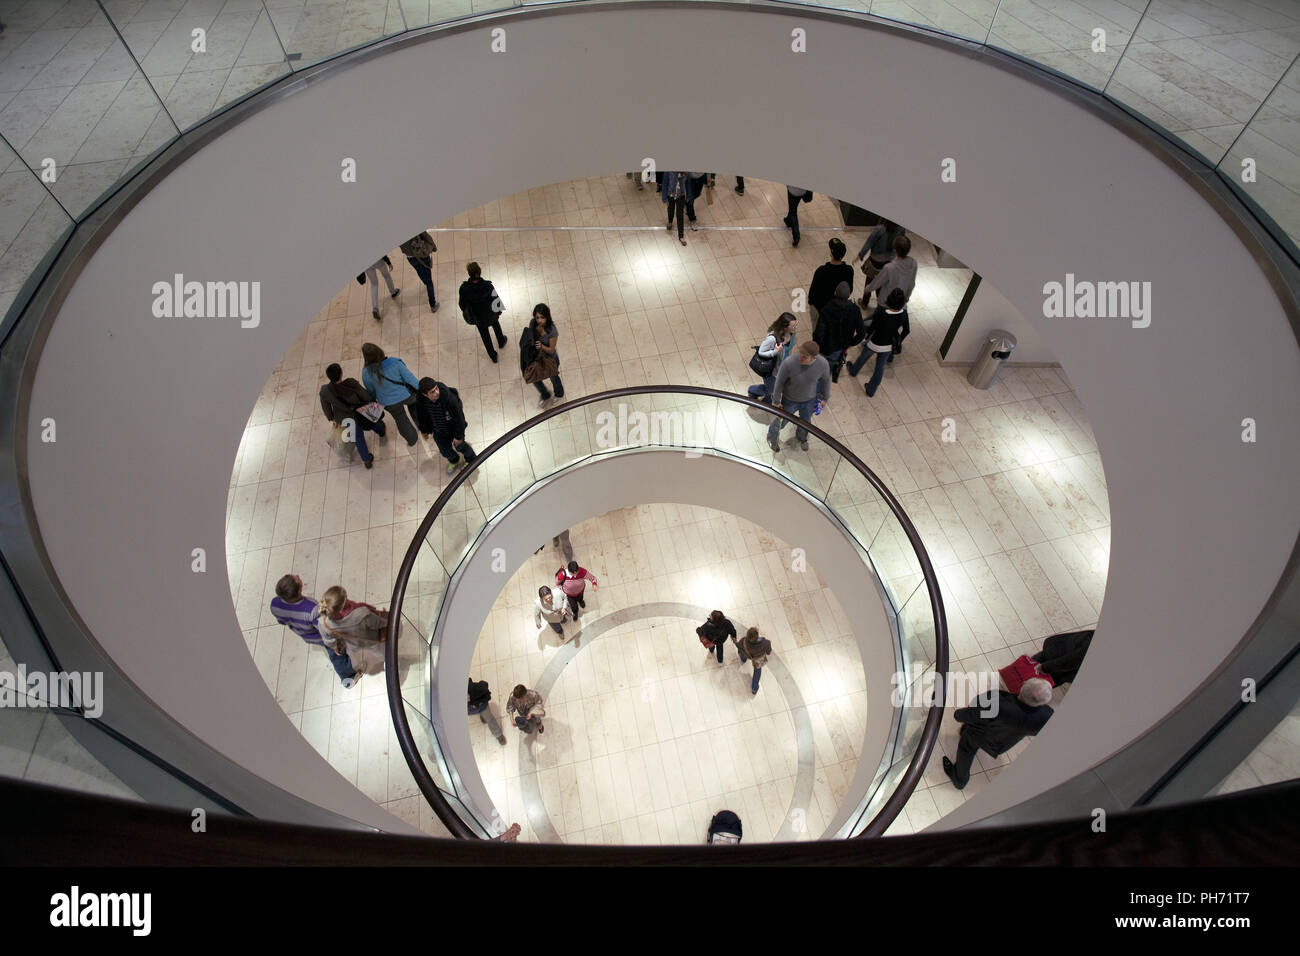 Shopping Center Thier Gallery, Dortmund, Germany. - Stock Image